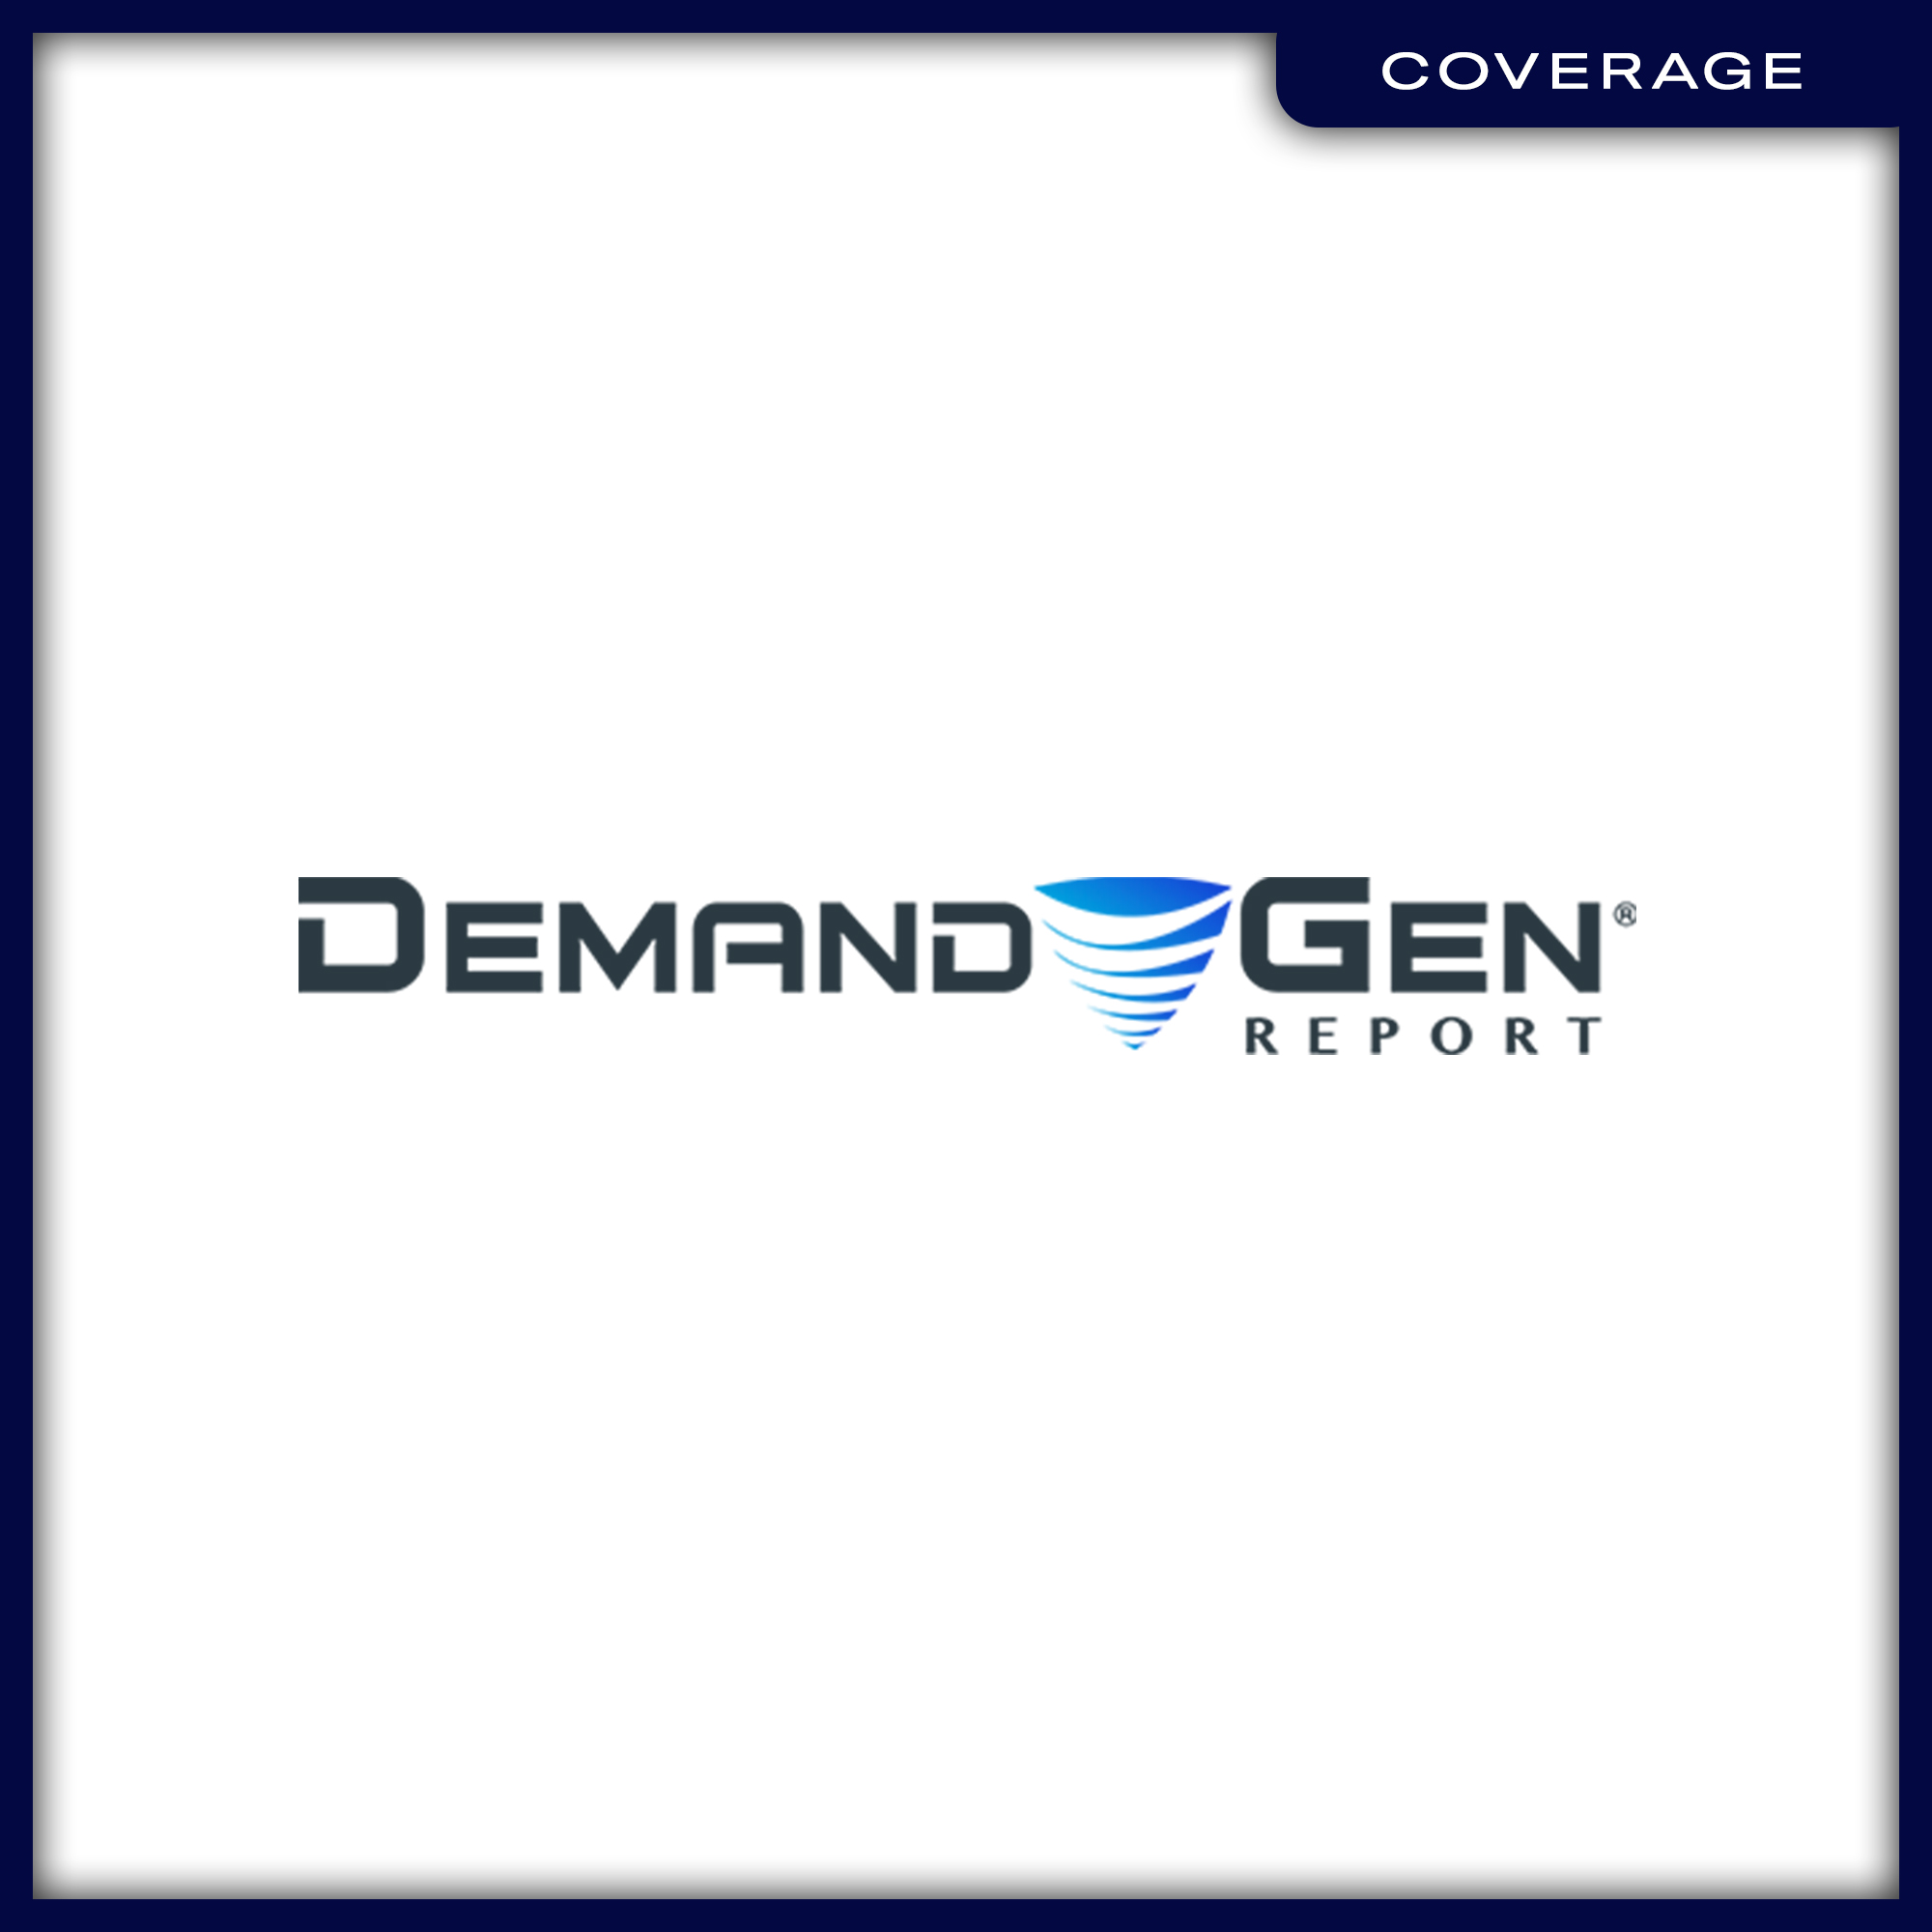 17-Coverage--Demand-Gen-Report--Casted-Aims-to-Empower-Marketers-to-Develop-Podcast-Content